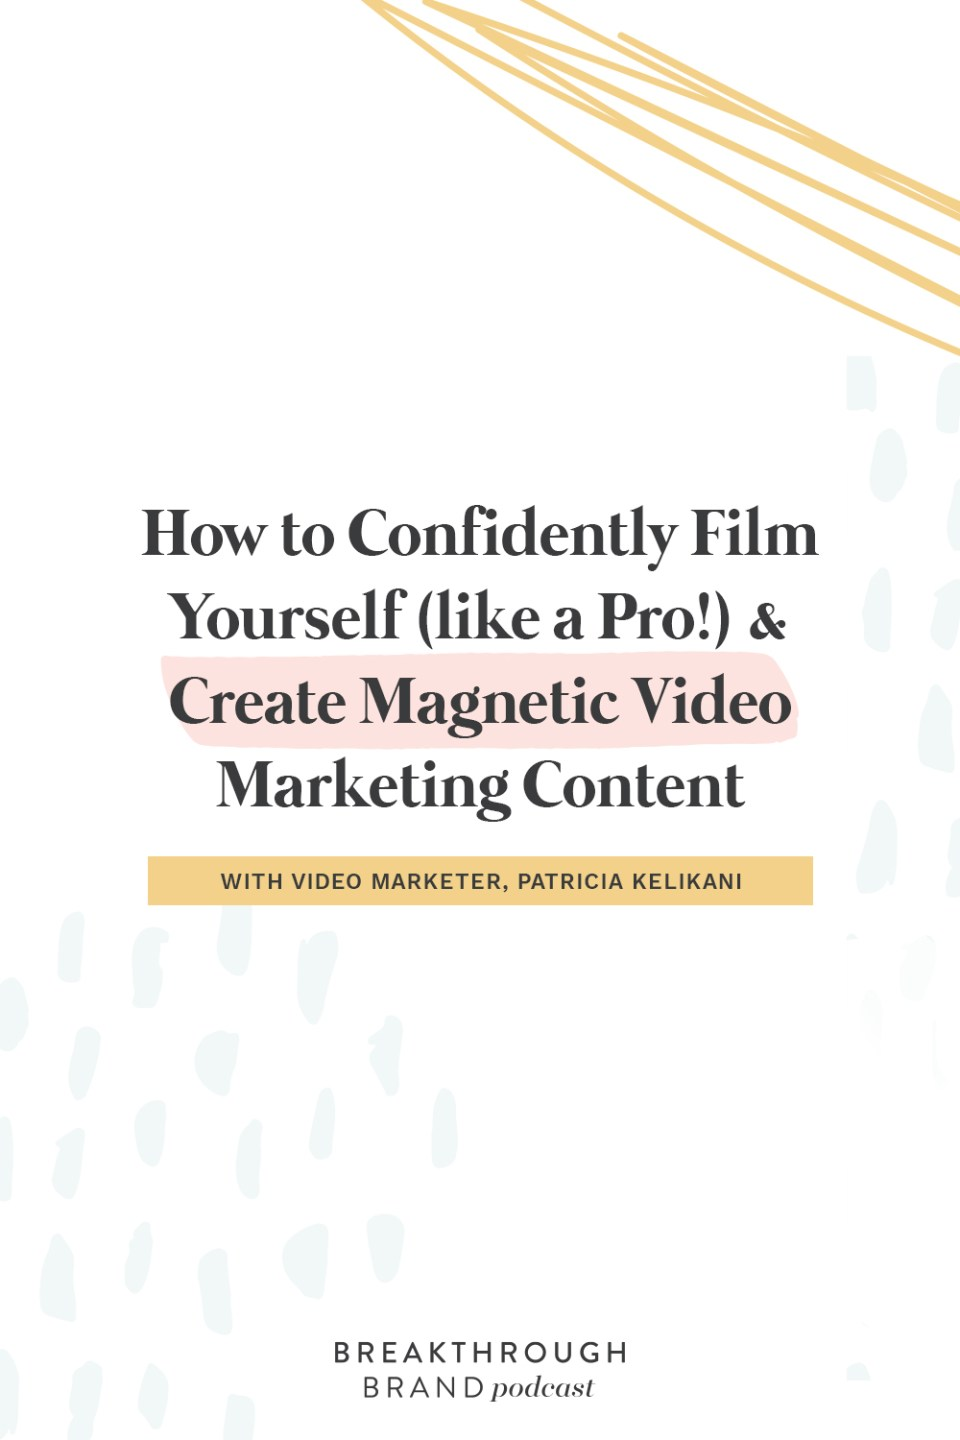 Learn how to create video marketing content like a pro and feel confident on camera with Patricia Kelikani on the Breakthrough Brand Podcast.